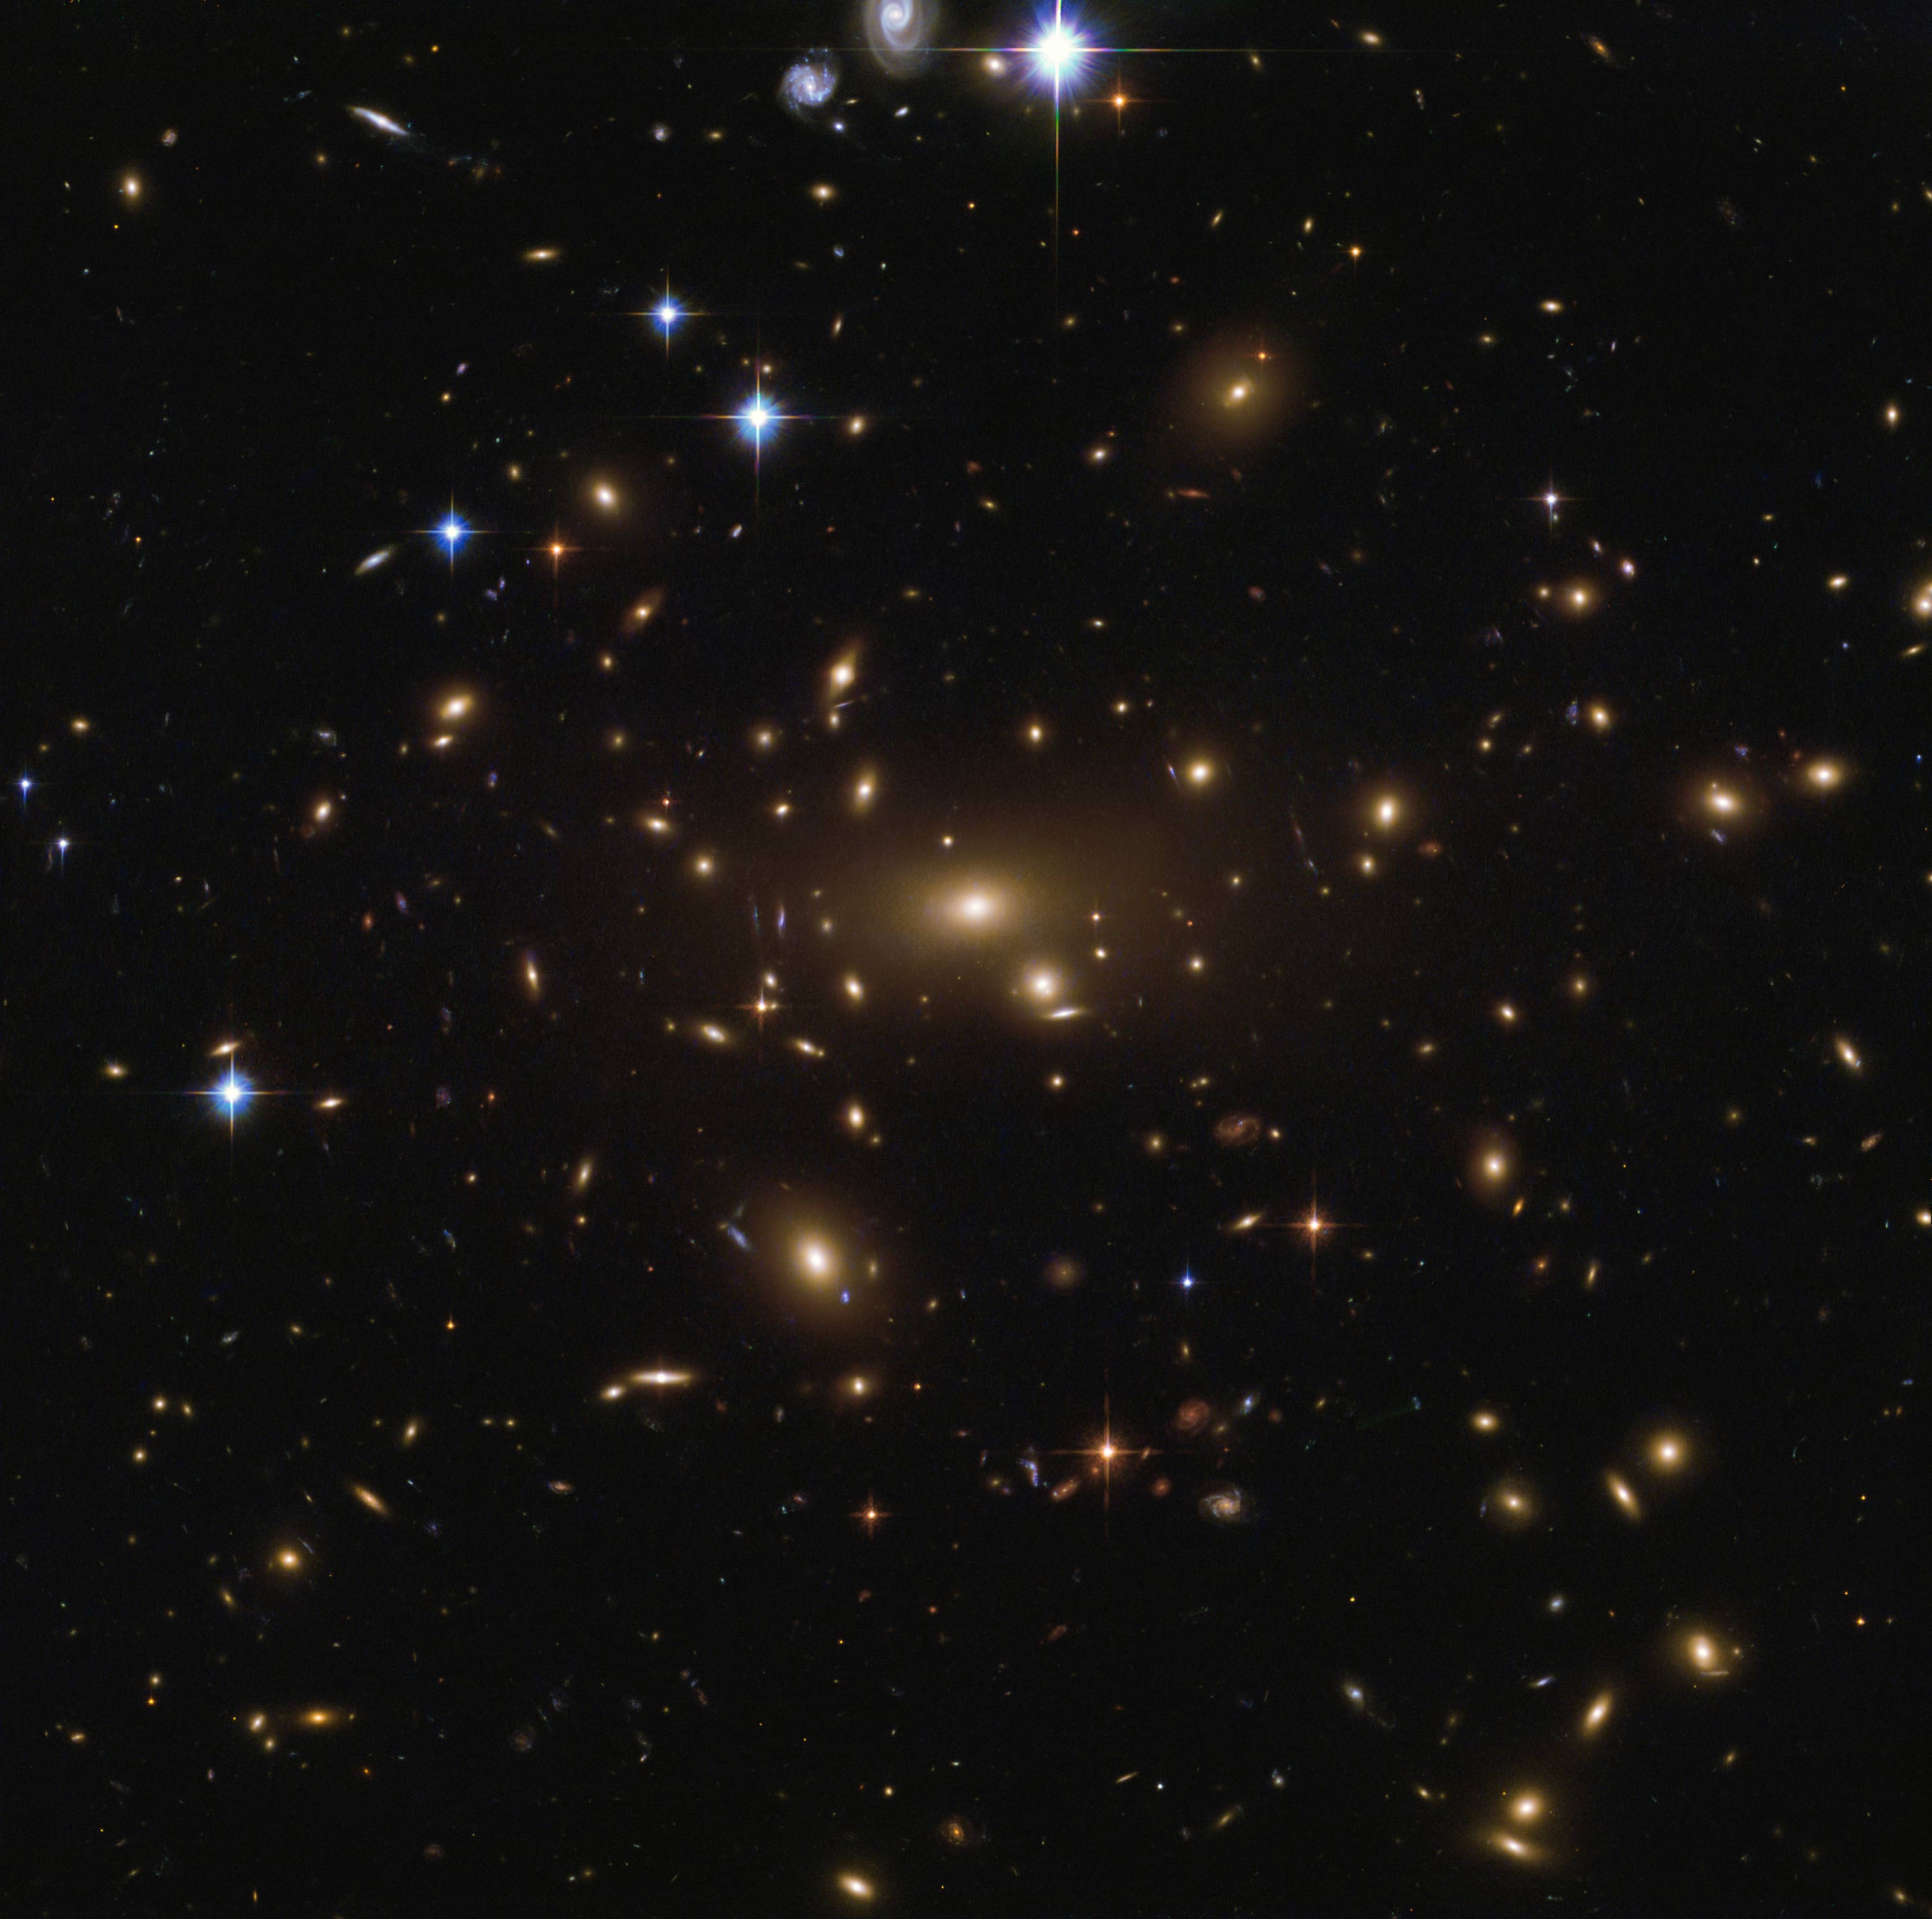 Hubble Space Telescope Sees Rich Galaxy Cluster ...